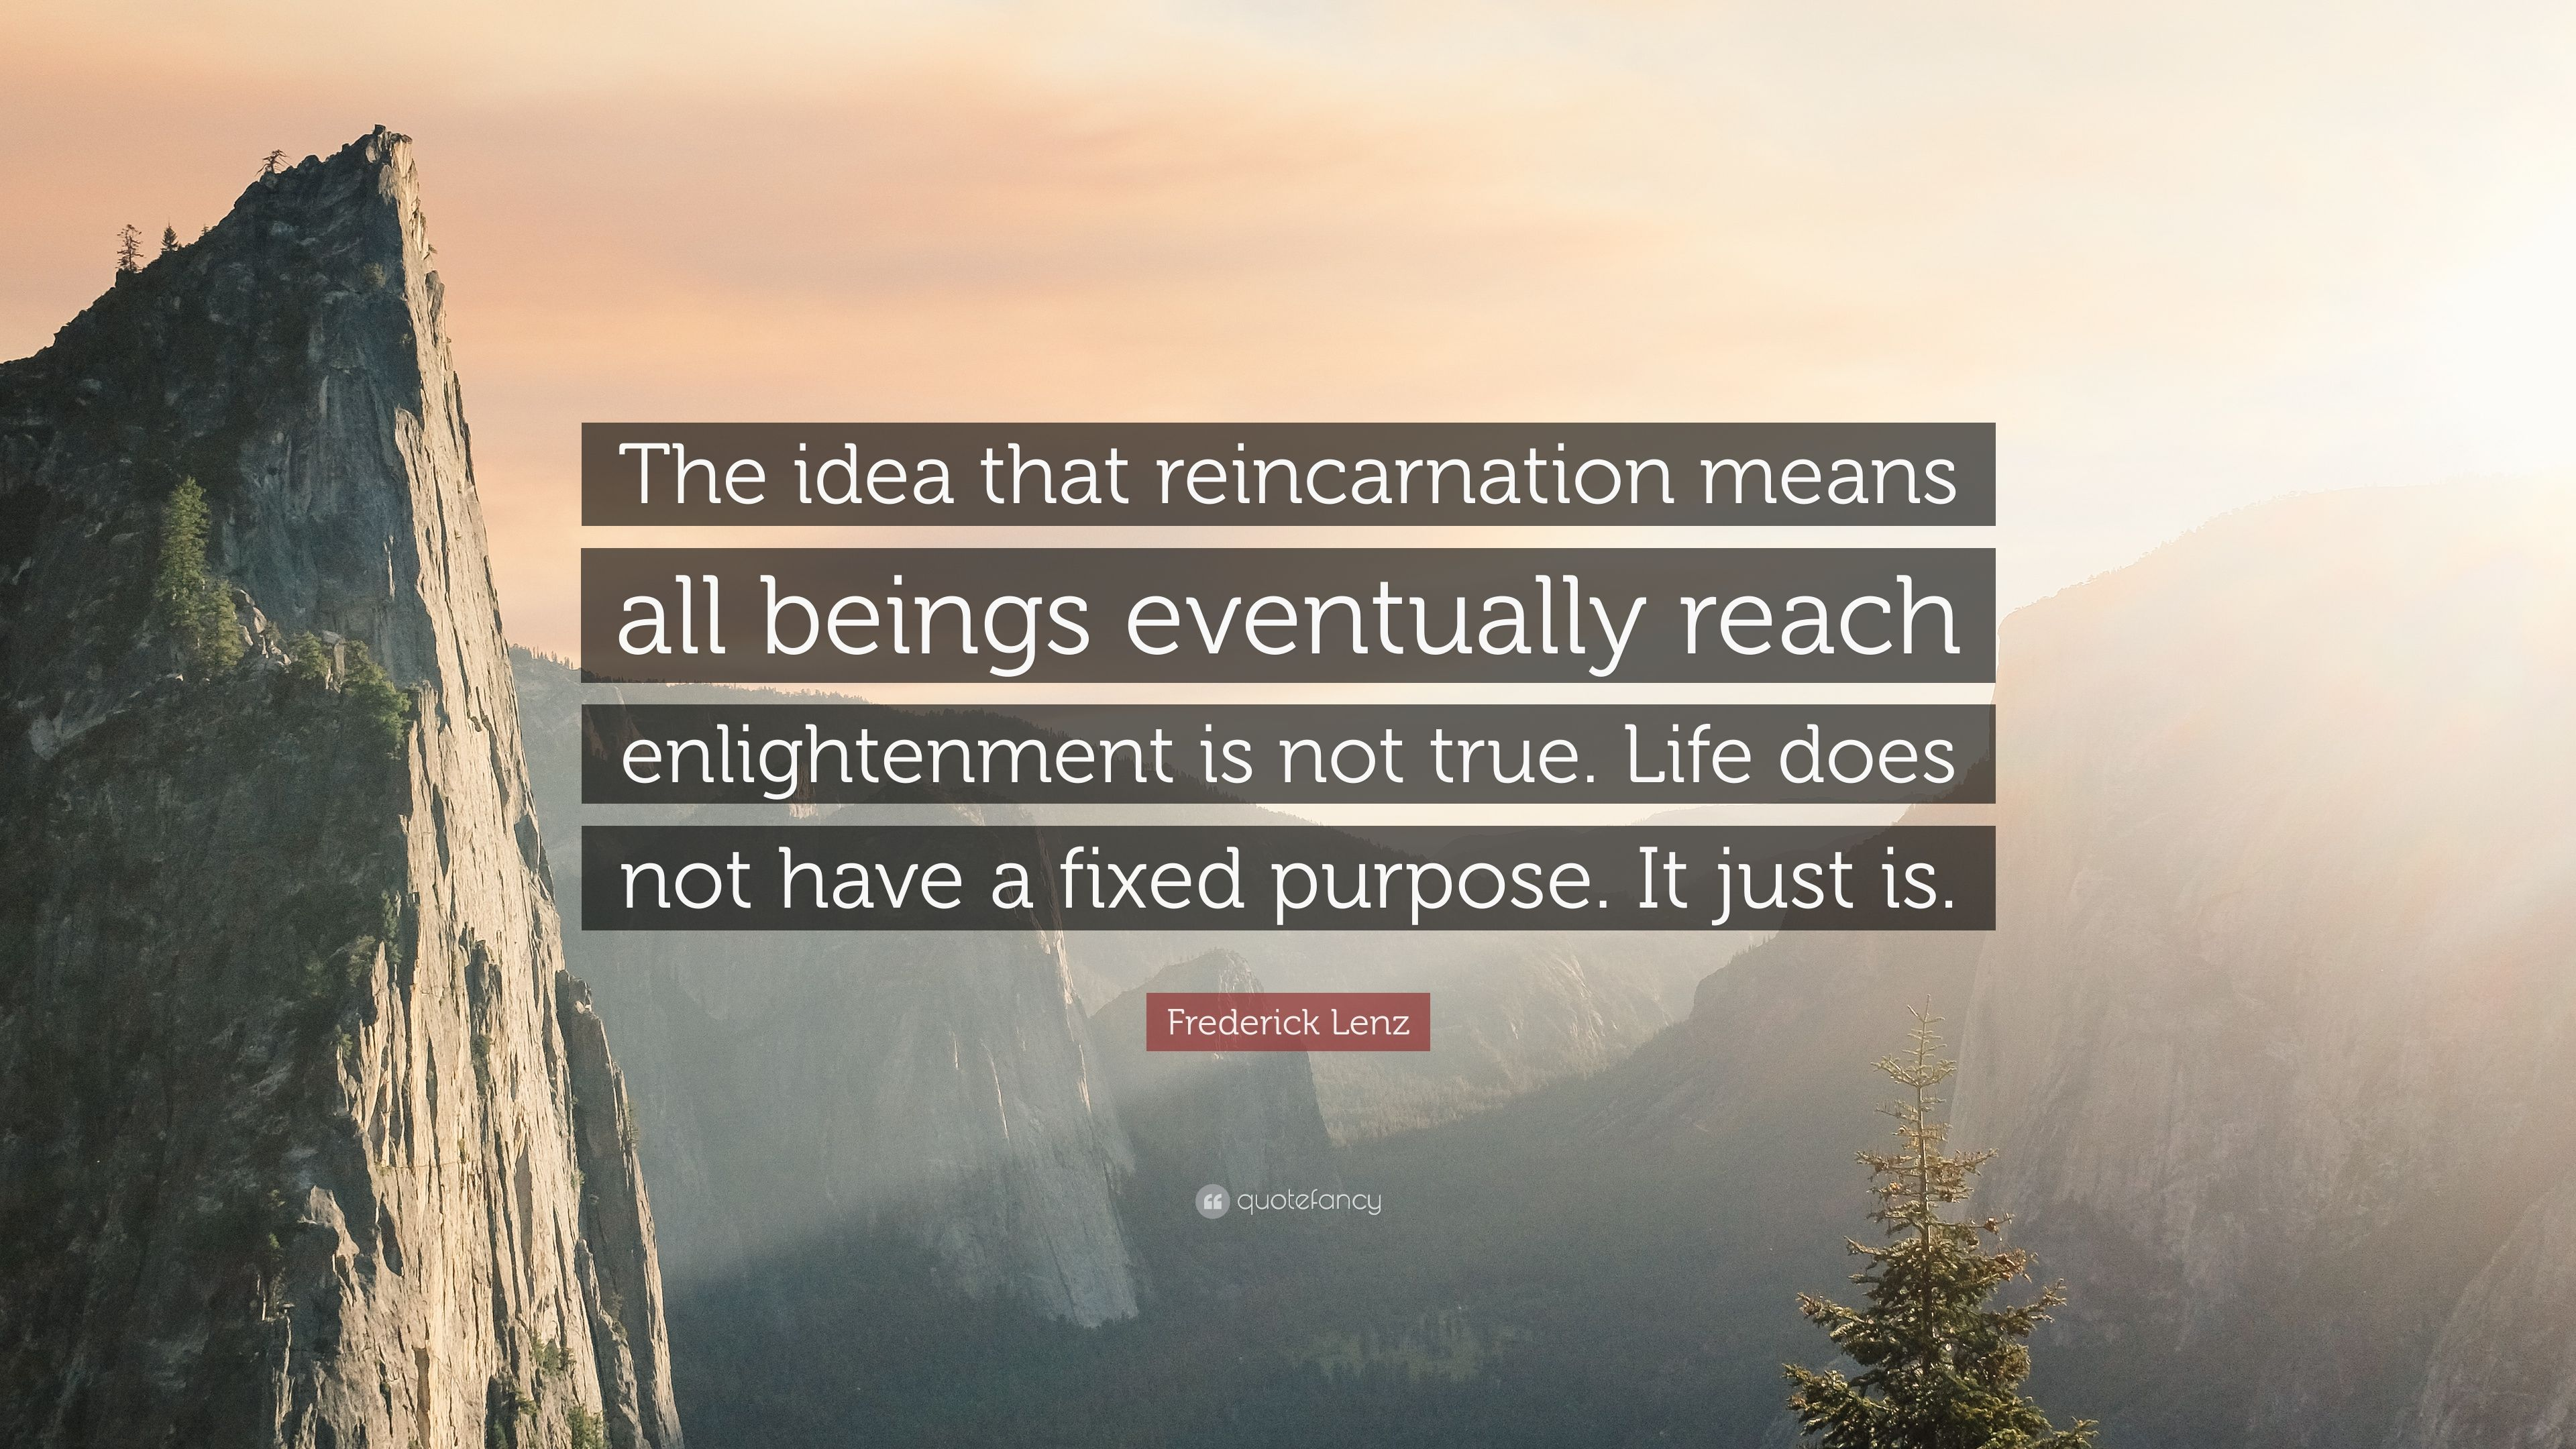 a summary of the idea of reincarnation The mystery of reincarnation many sects have variant views of reincarnation here is a general summary of the basic principles the bible refutes the idea.